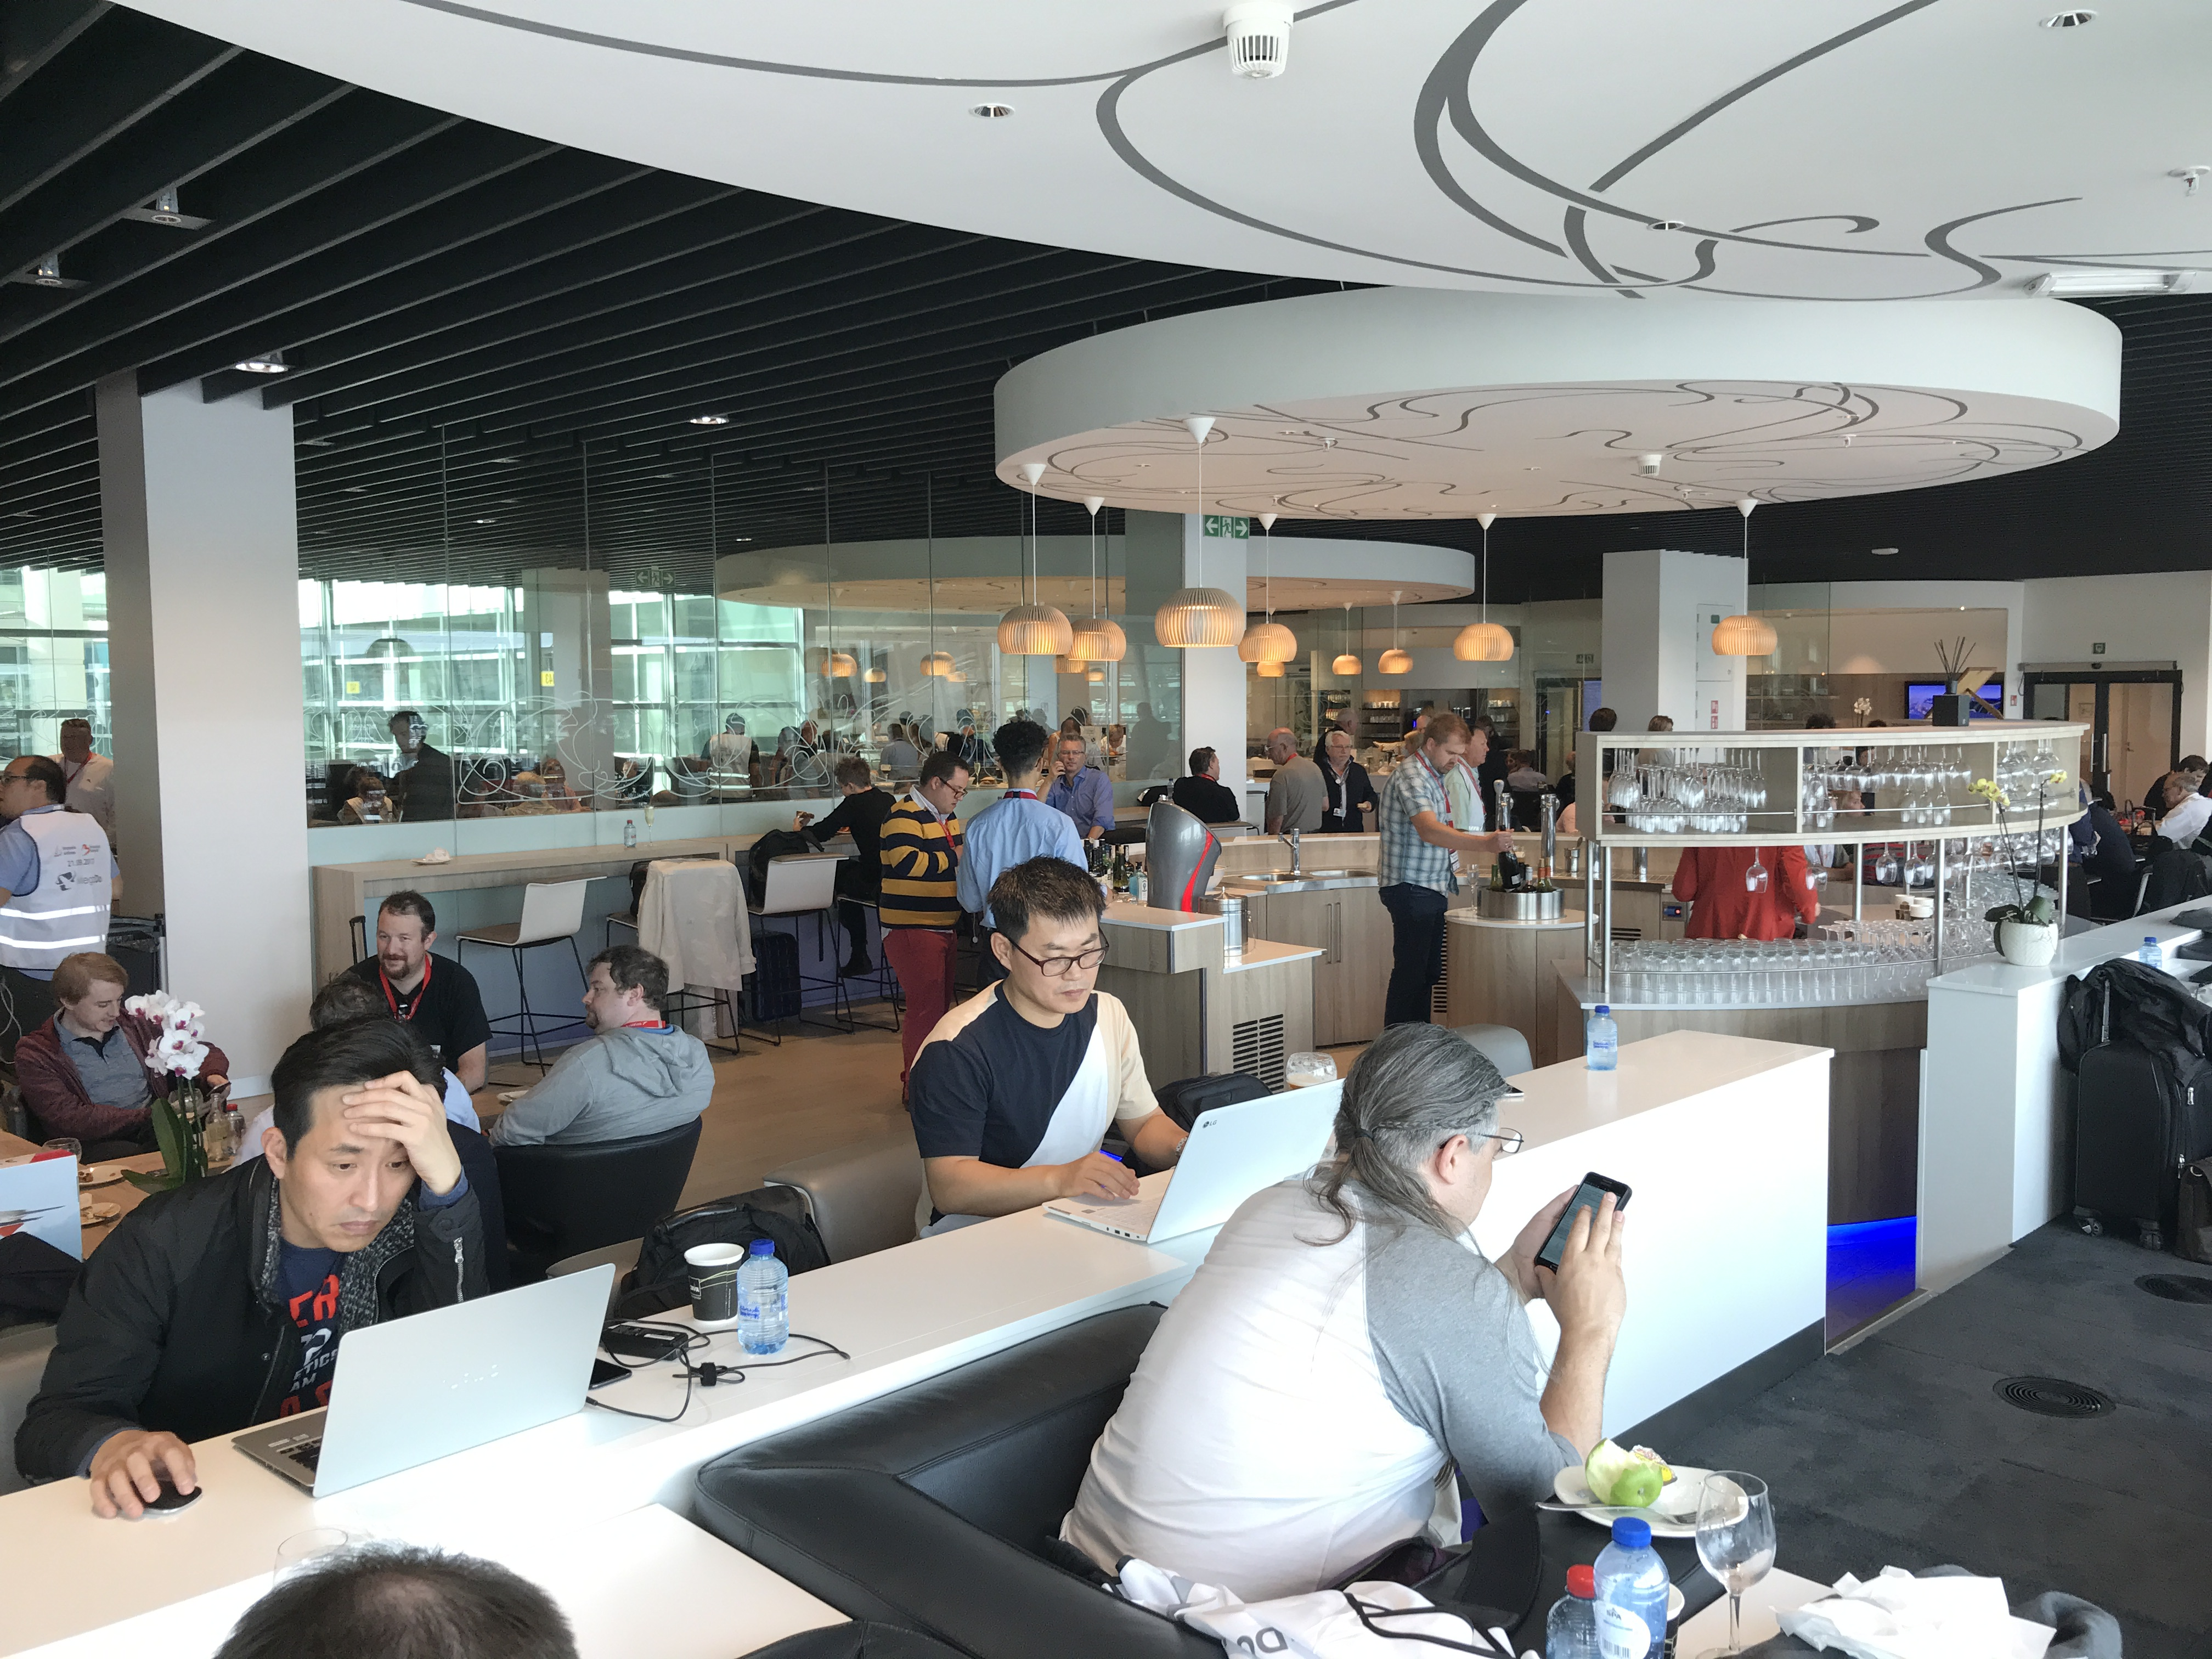 The loft business class lounge at Brussels